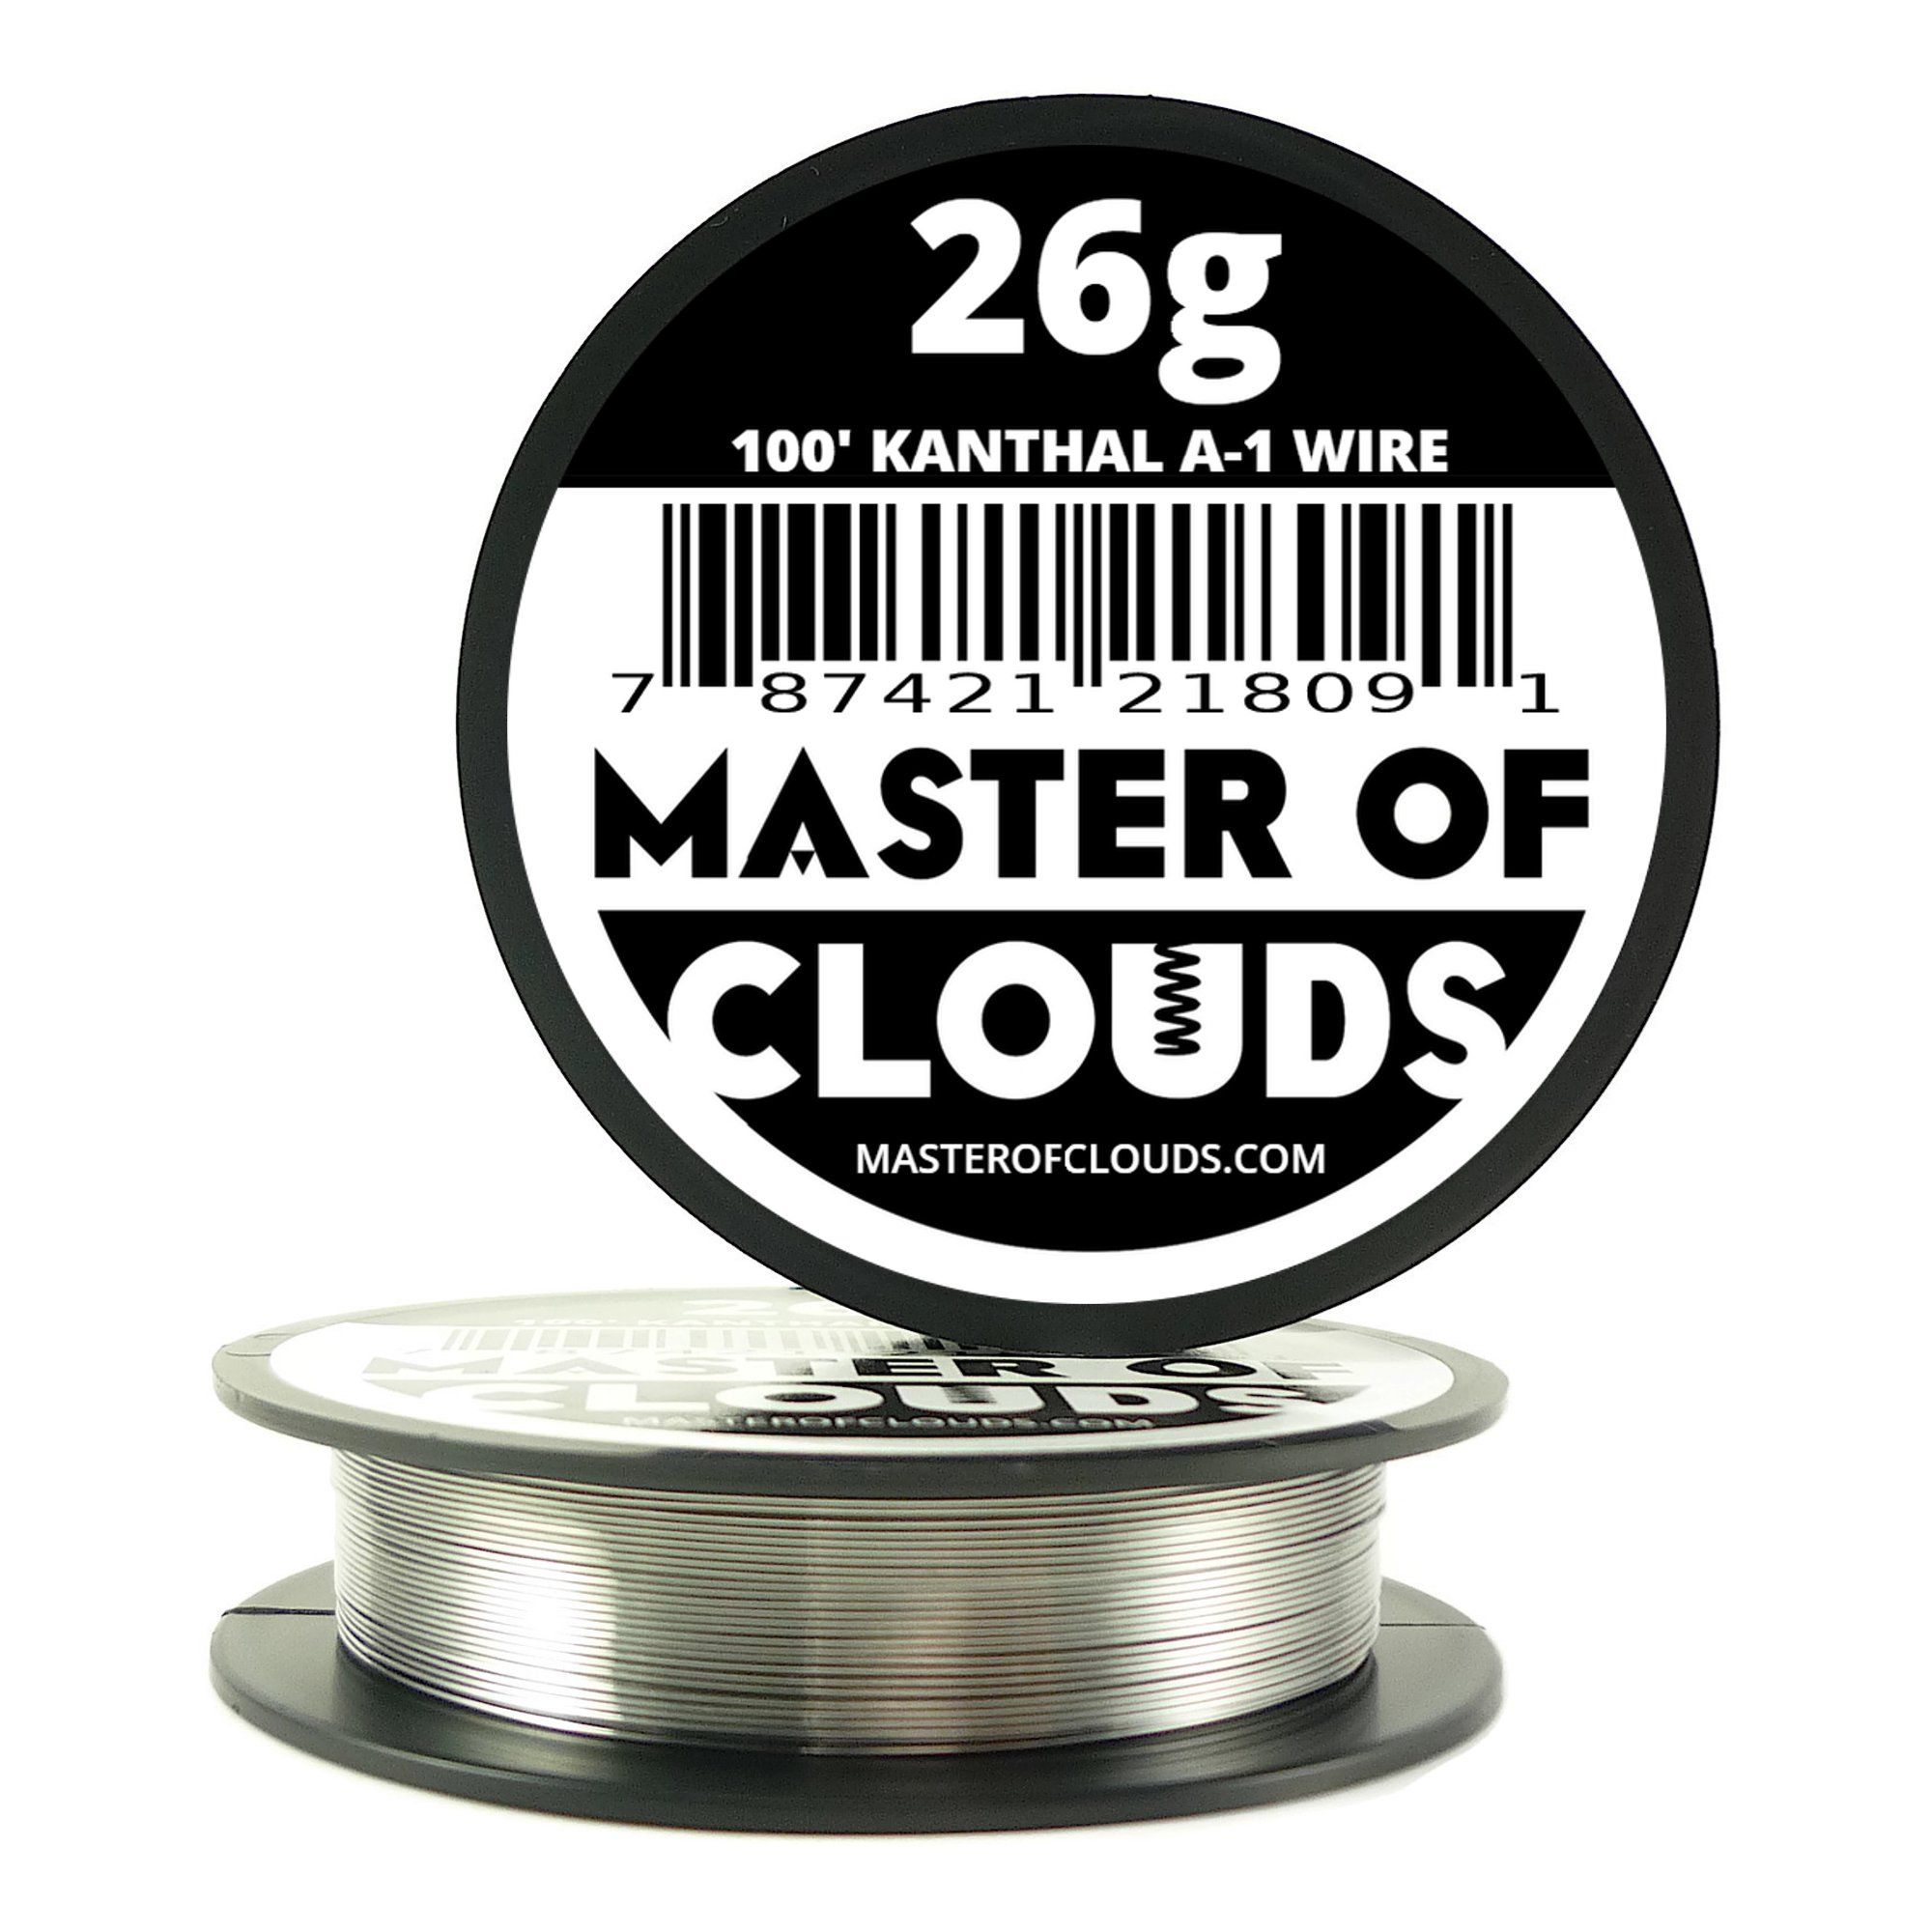 100 Ft 26 Gauge Kanthal A1 Resistance Wire Awg Lengths Home House Wiring